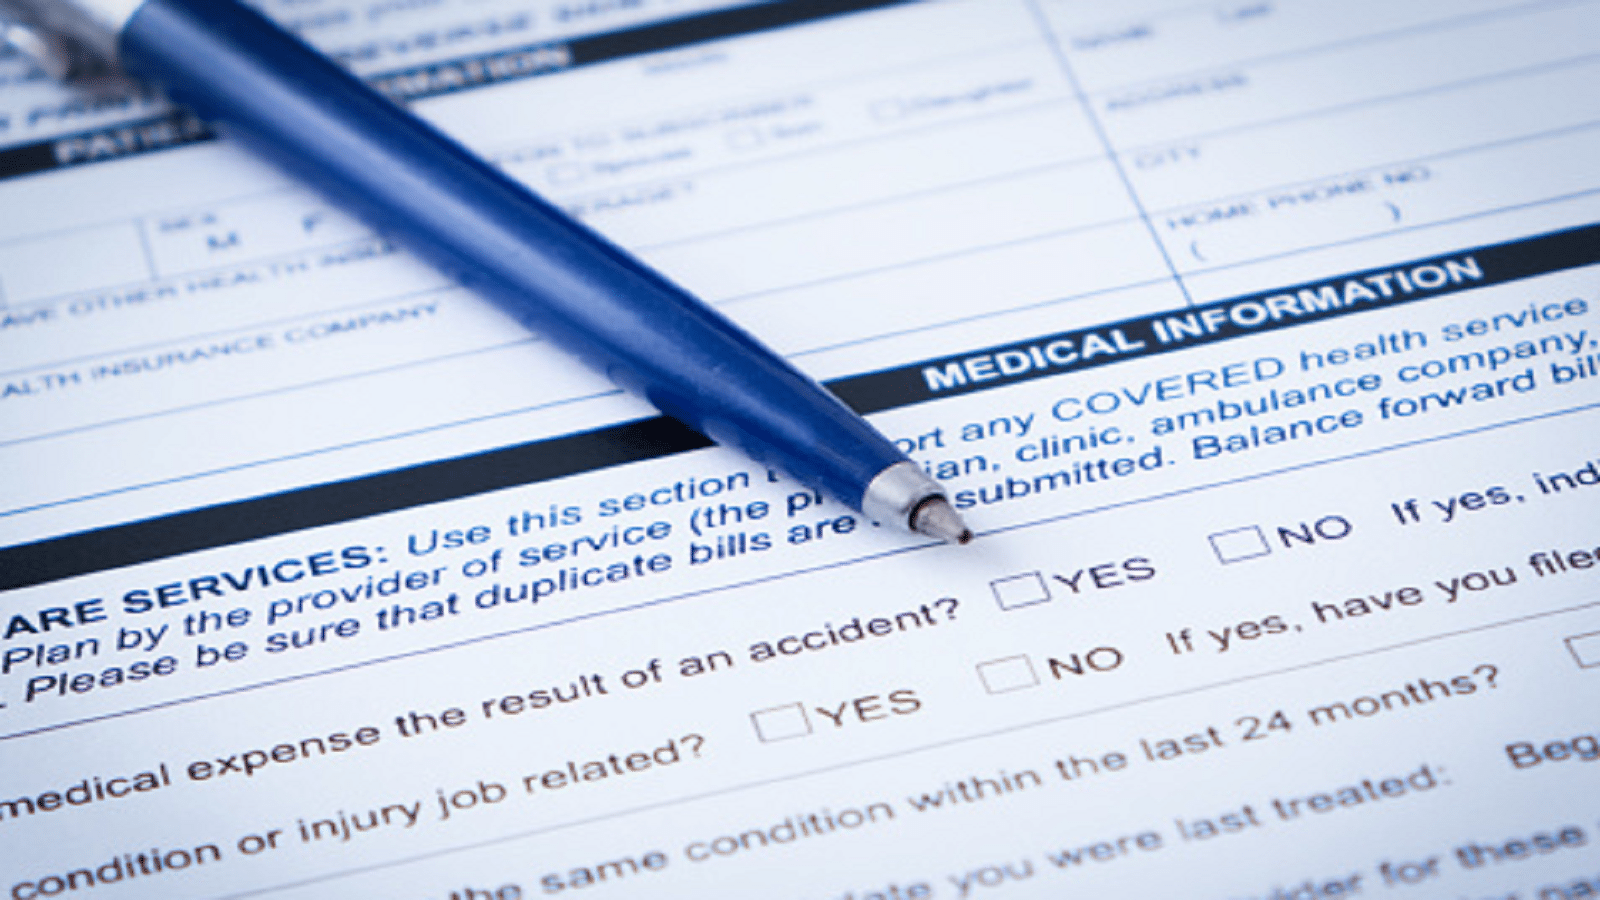 Blank Medical Form Stock Photo